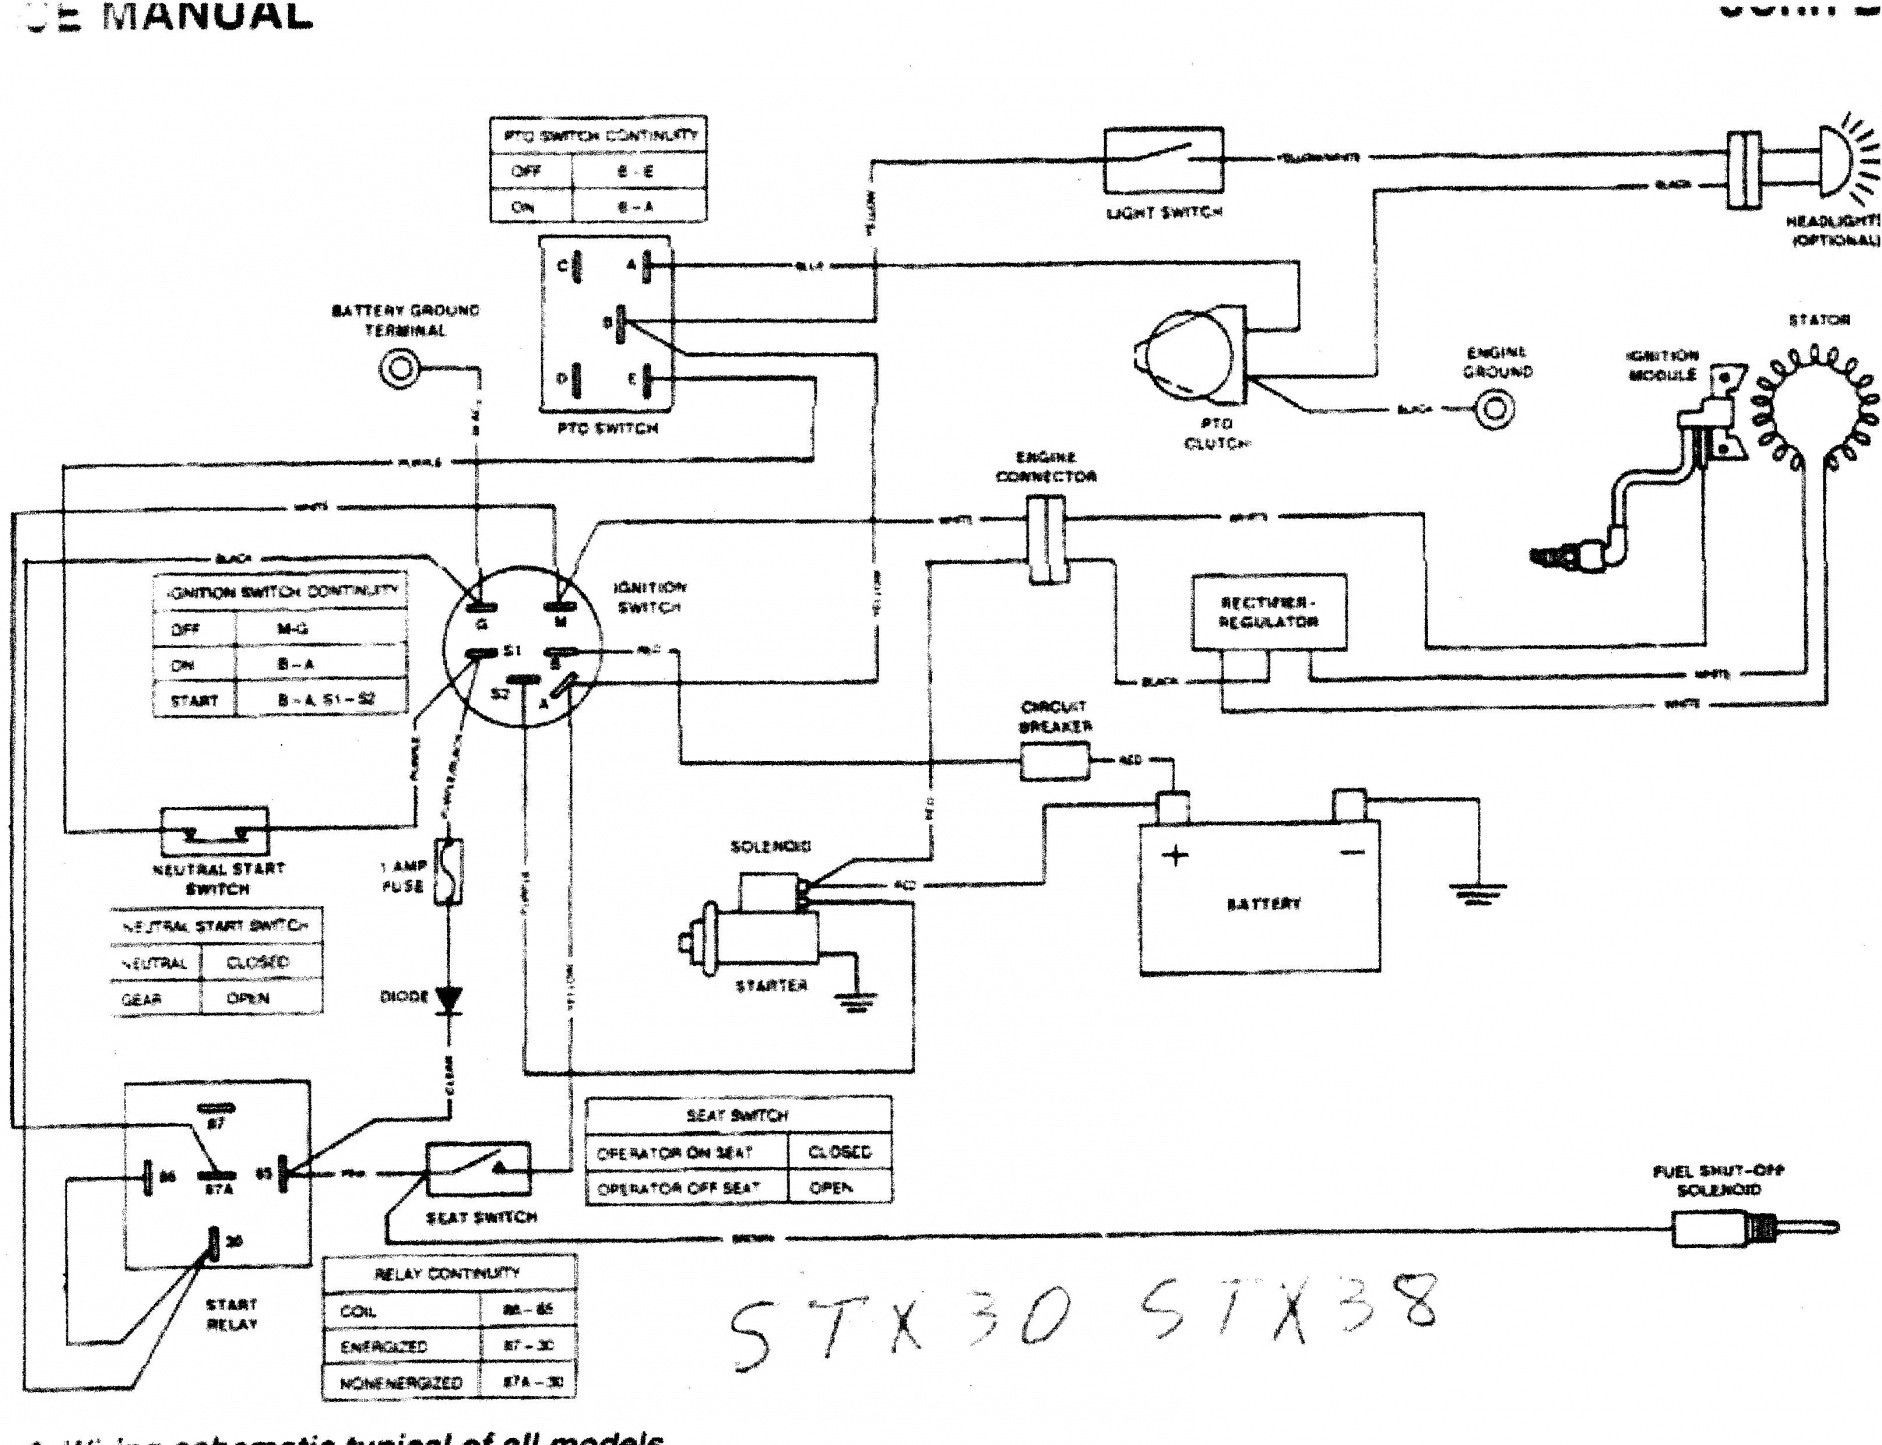 Jd 345 Lawn Tractor Wiring Pin On Wiring Diagram Of Jd 345 Lawn Tractor Wiring